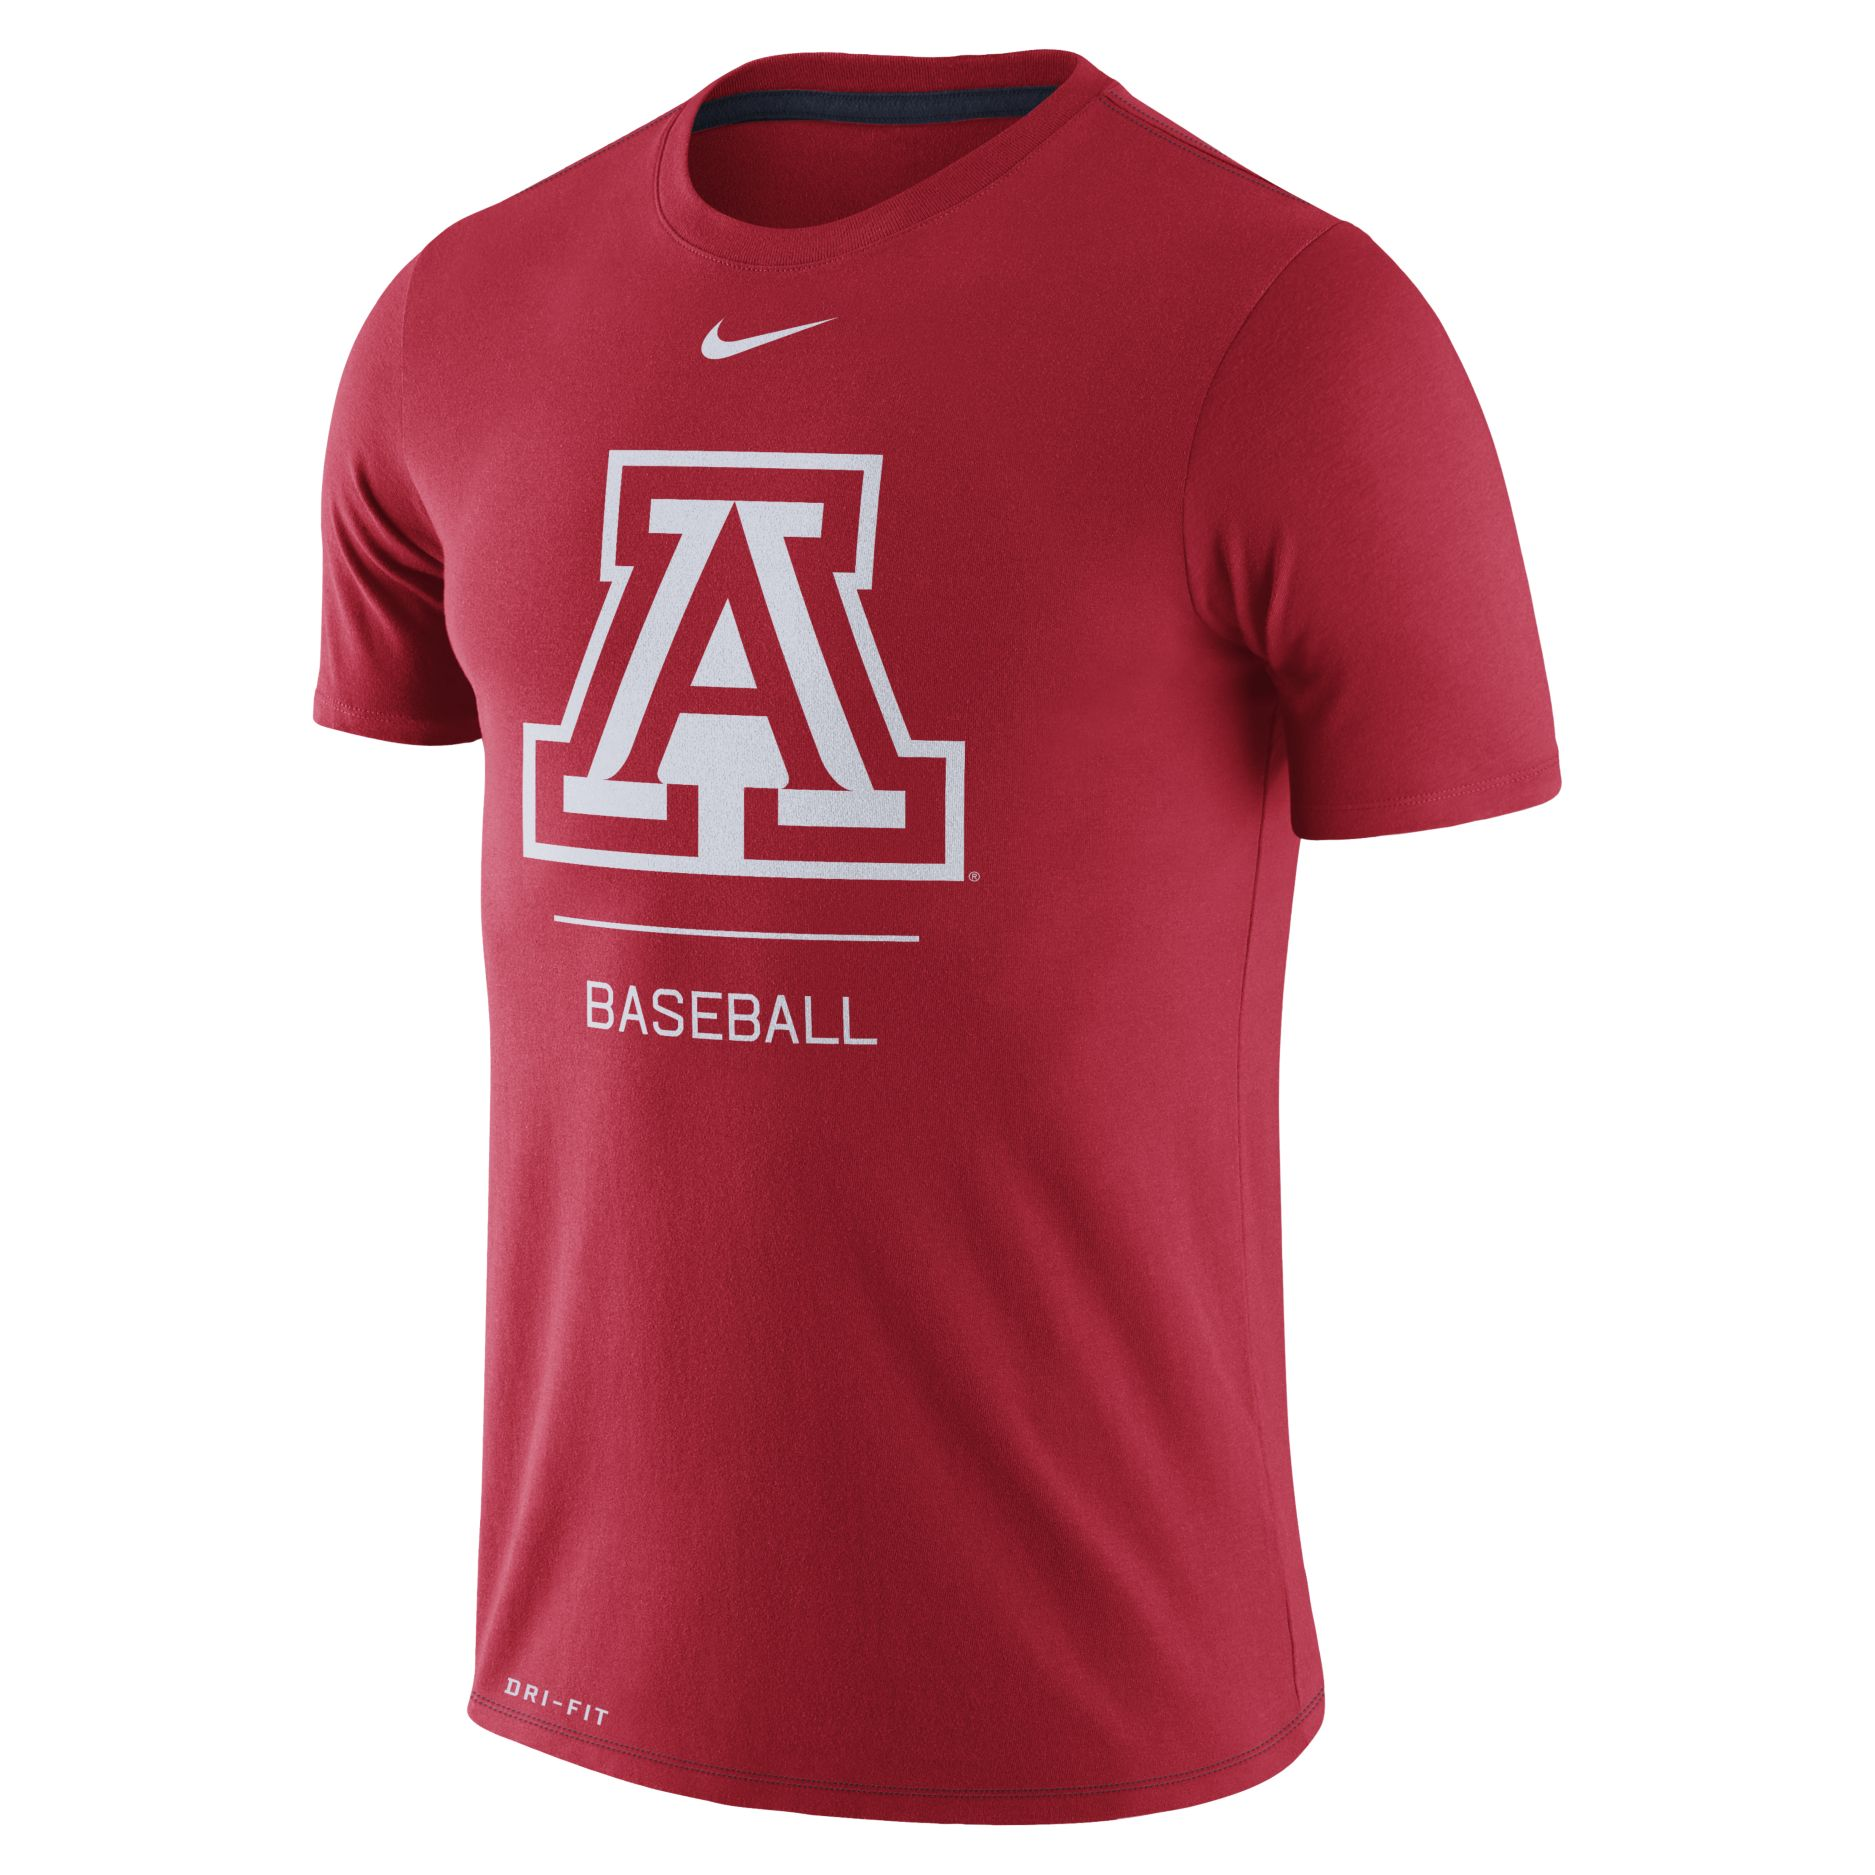 Cover Image For Nike: Arizona Wildcats Baseball Dugout Team Tee - Red